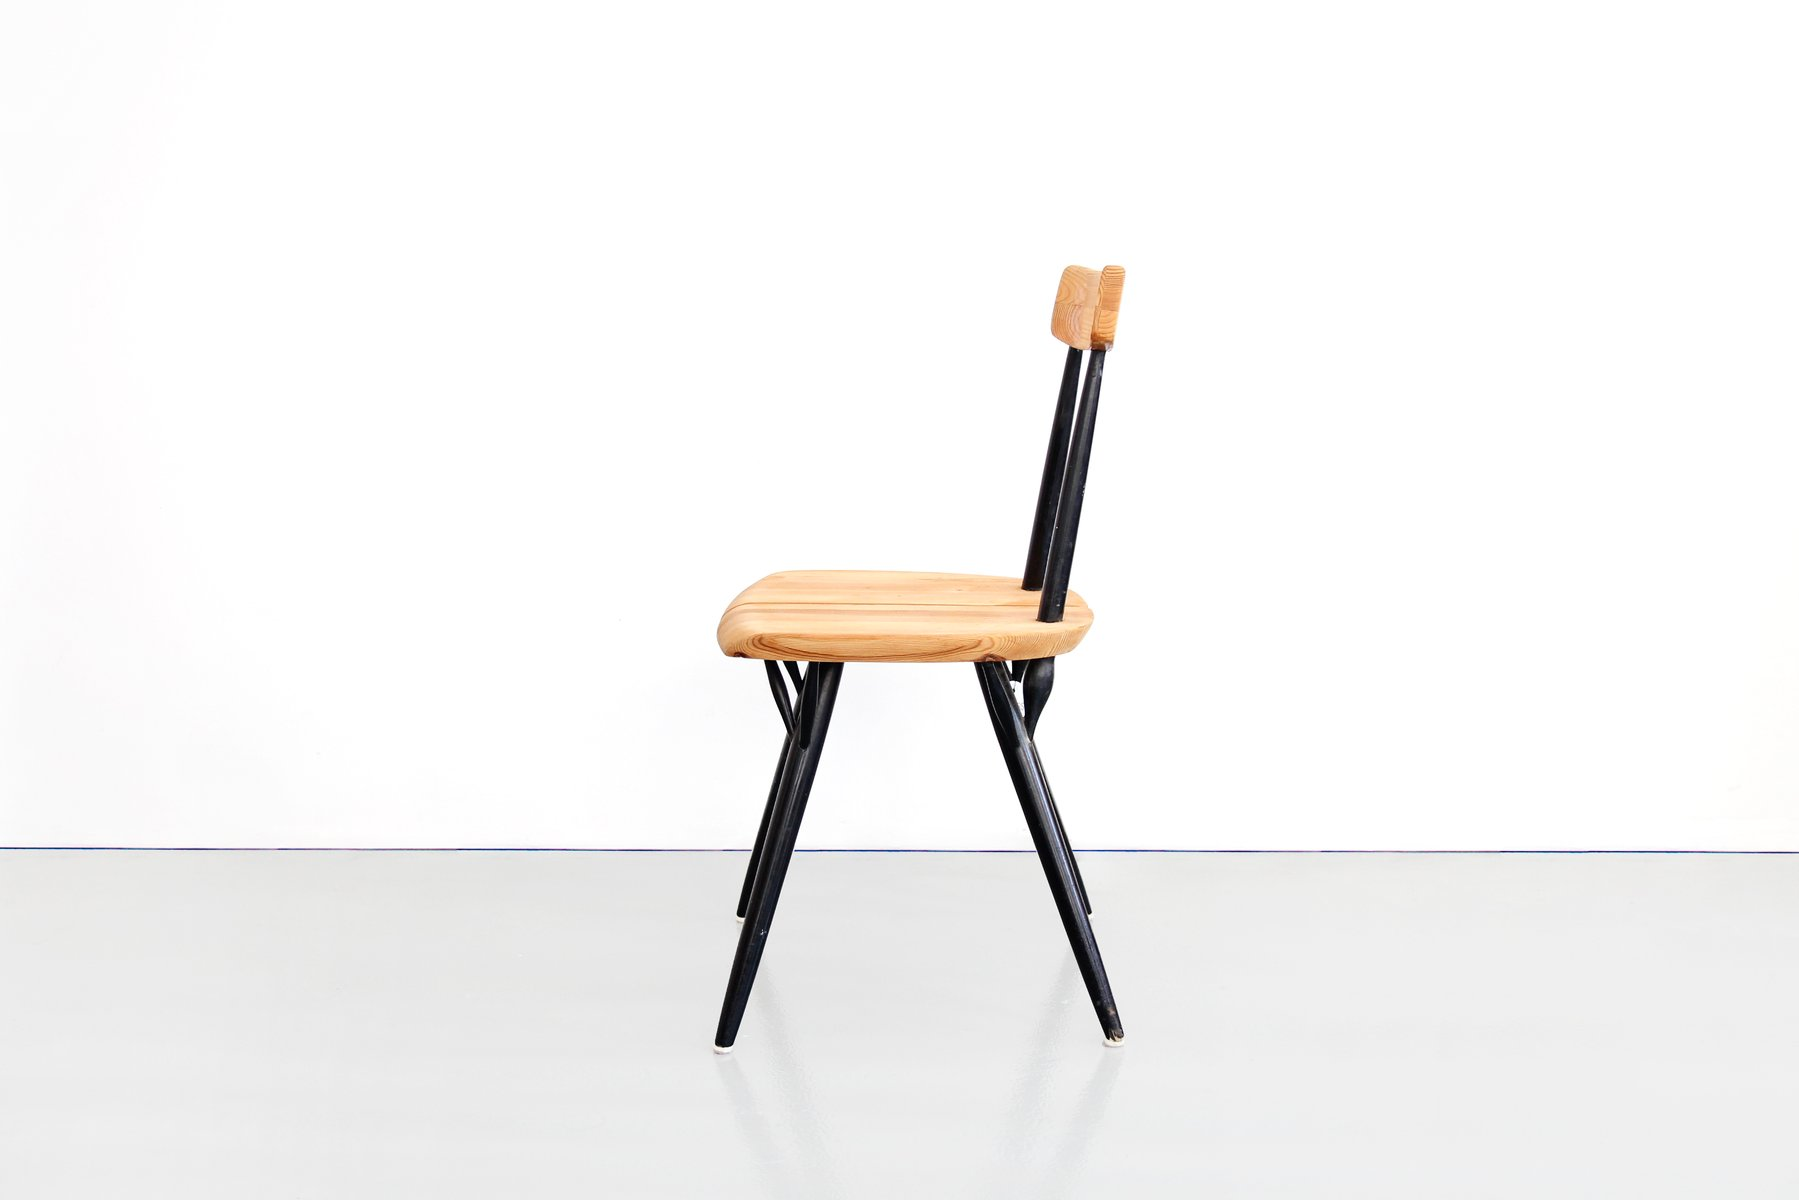 pirkka chair by ilmari tapiovaara for laukaan puu 1955 for sale at pamono. Black Bedroom Furniture Sets. Home Design Ideas